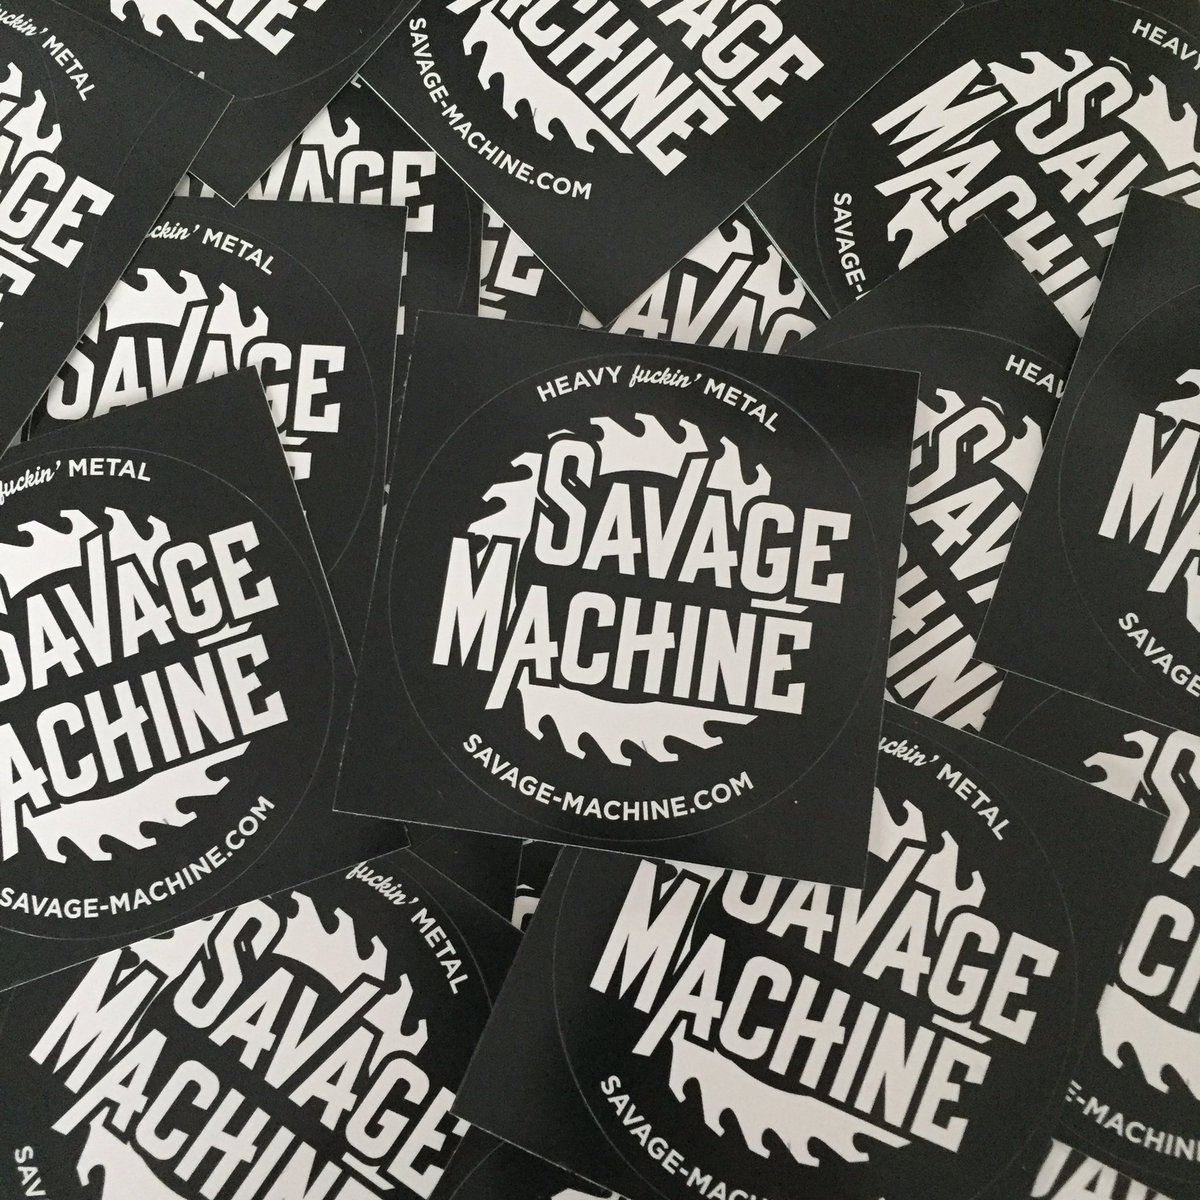 Savage_Machine photo